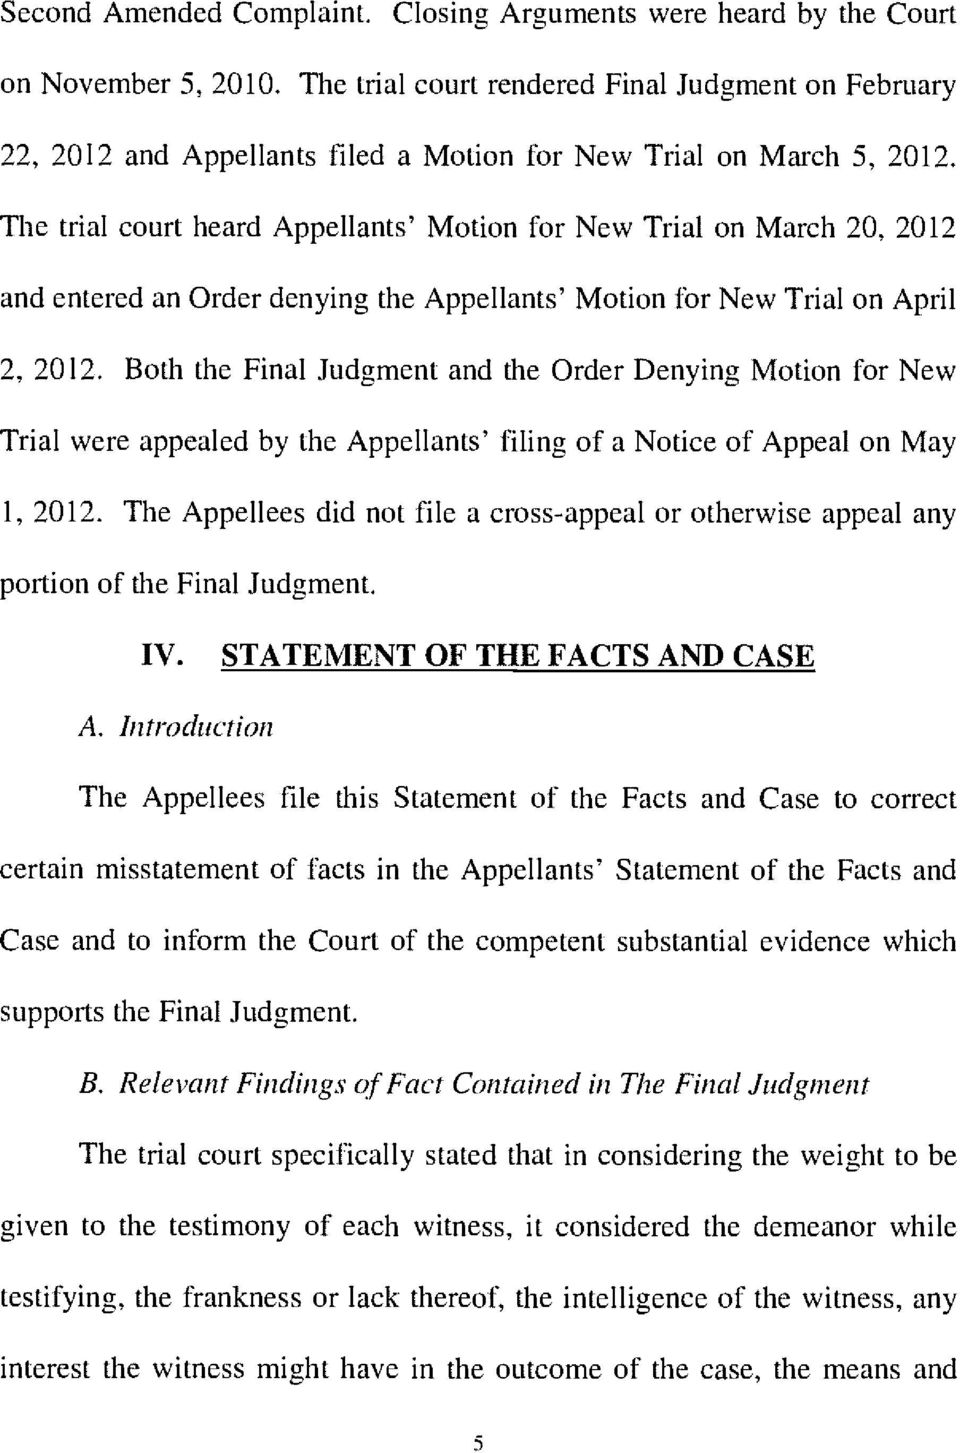 The trial court heard Appellants' Motion for New Trial on March 20, 2012 and entered an Order denying the Appellants' Motion for New Trial on April 2, 2012.